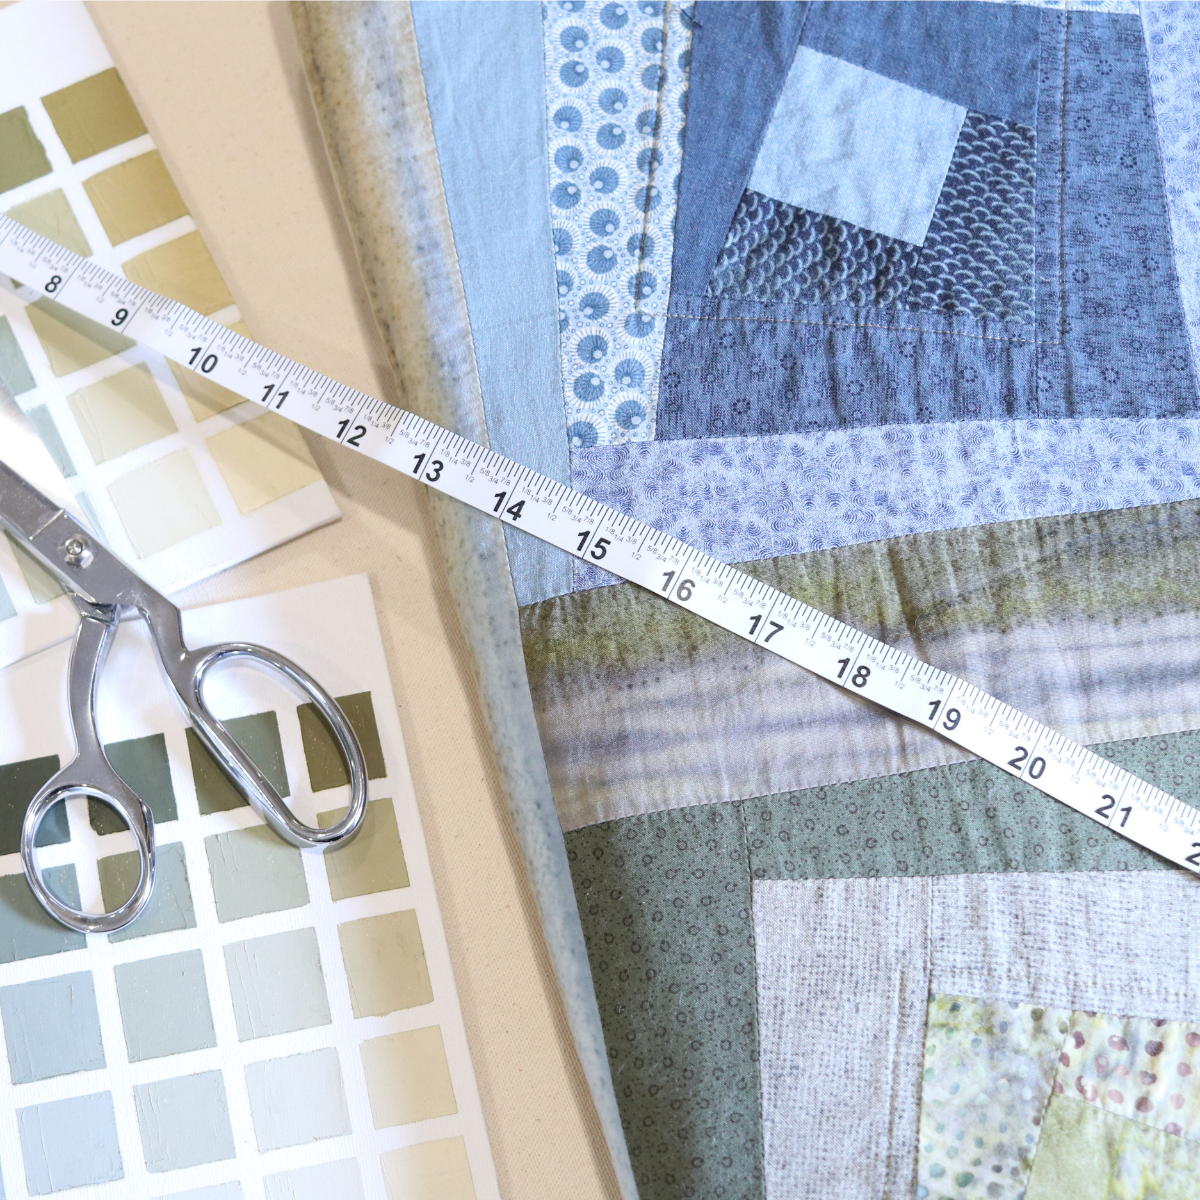 a blue and green log cabin quilt resting on a table. a white sewing tape measure laid over the top of it. Sitting next to the quilt is a sew of oil painted color charts that match the quilts color shades of greens and blues. A pair of silver scissors rests onto of the color charts